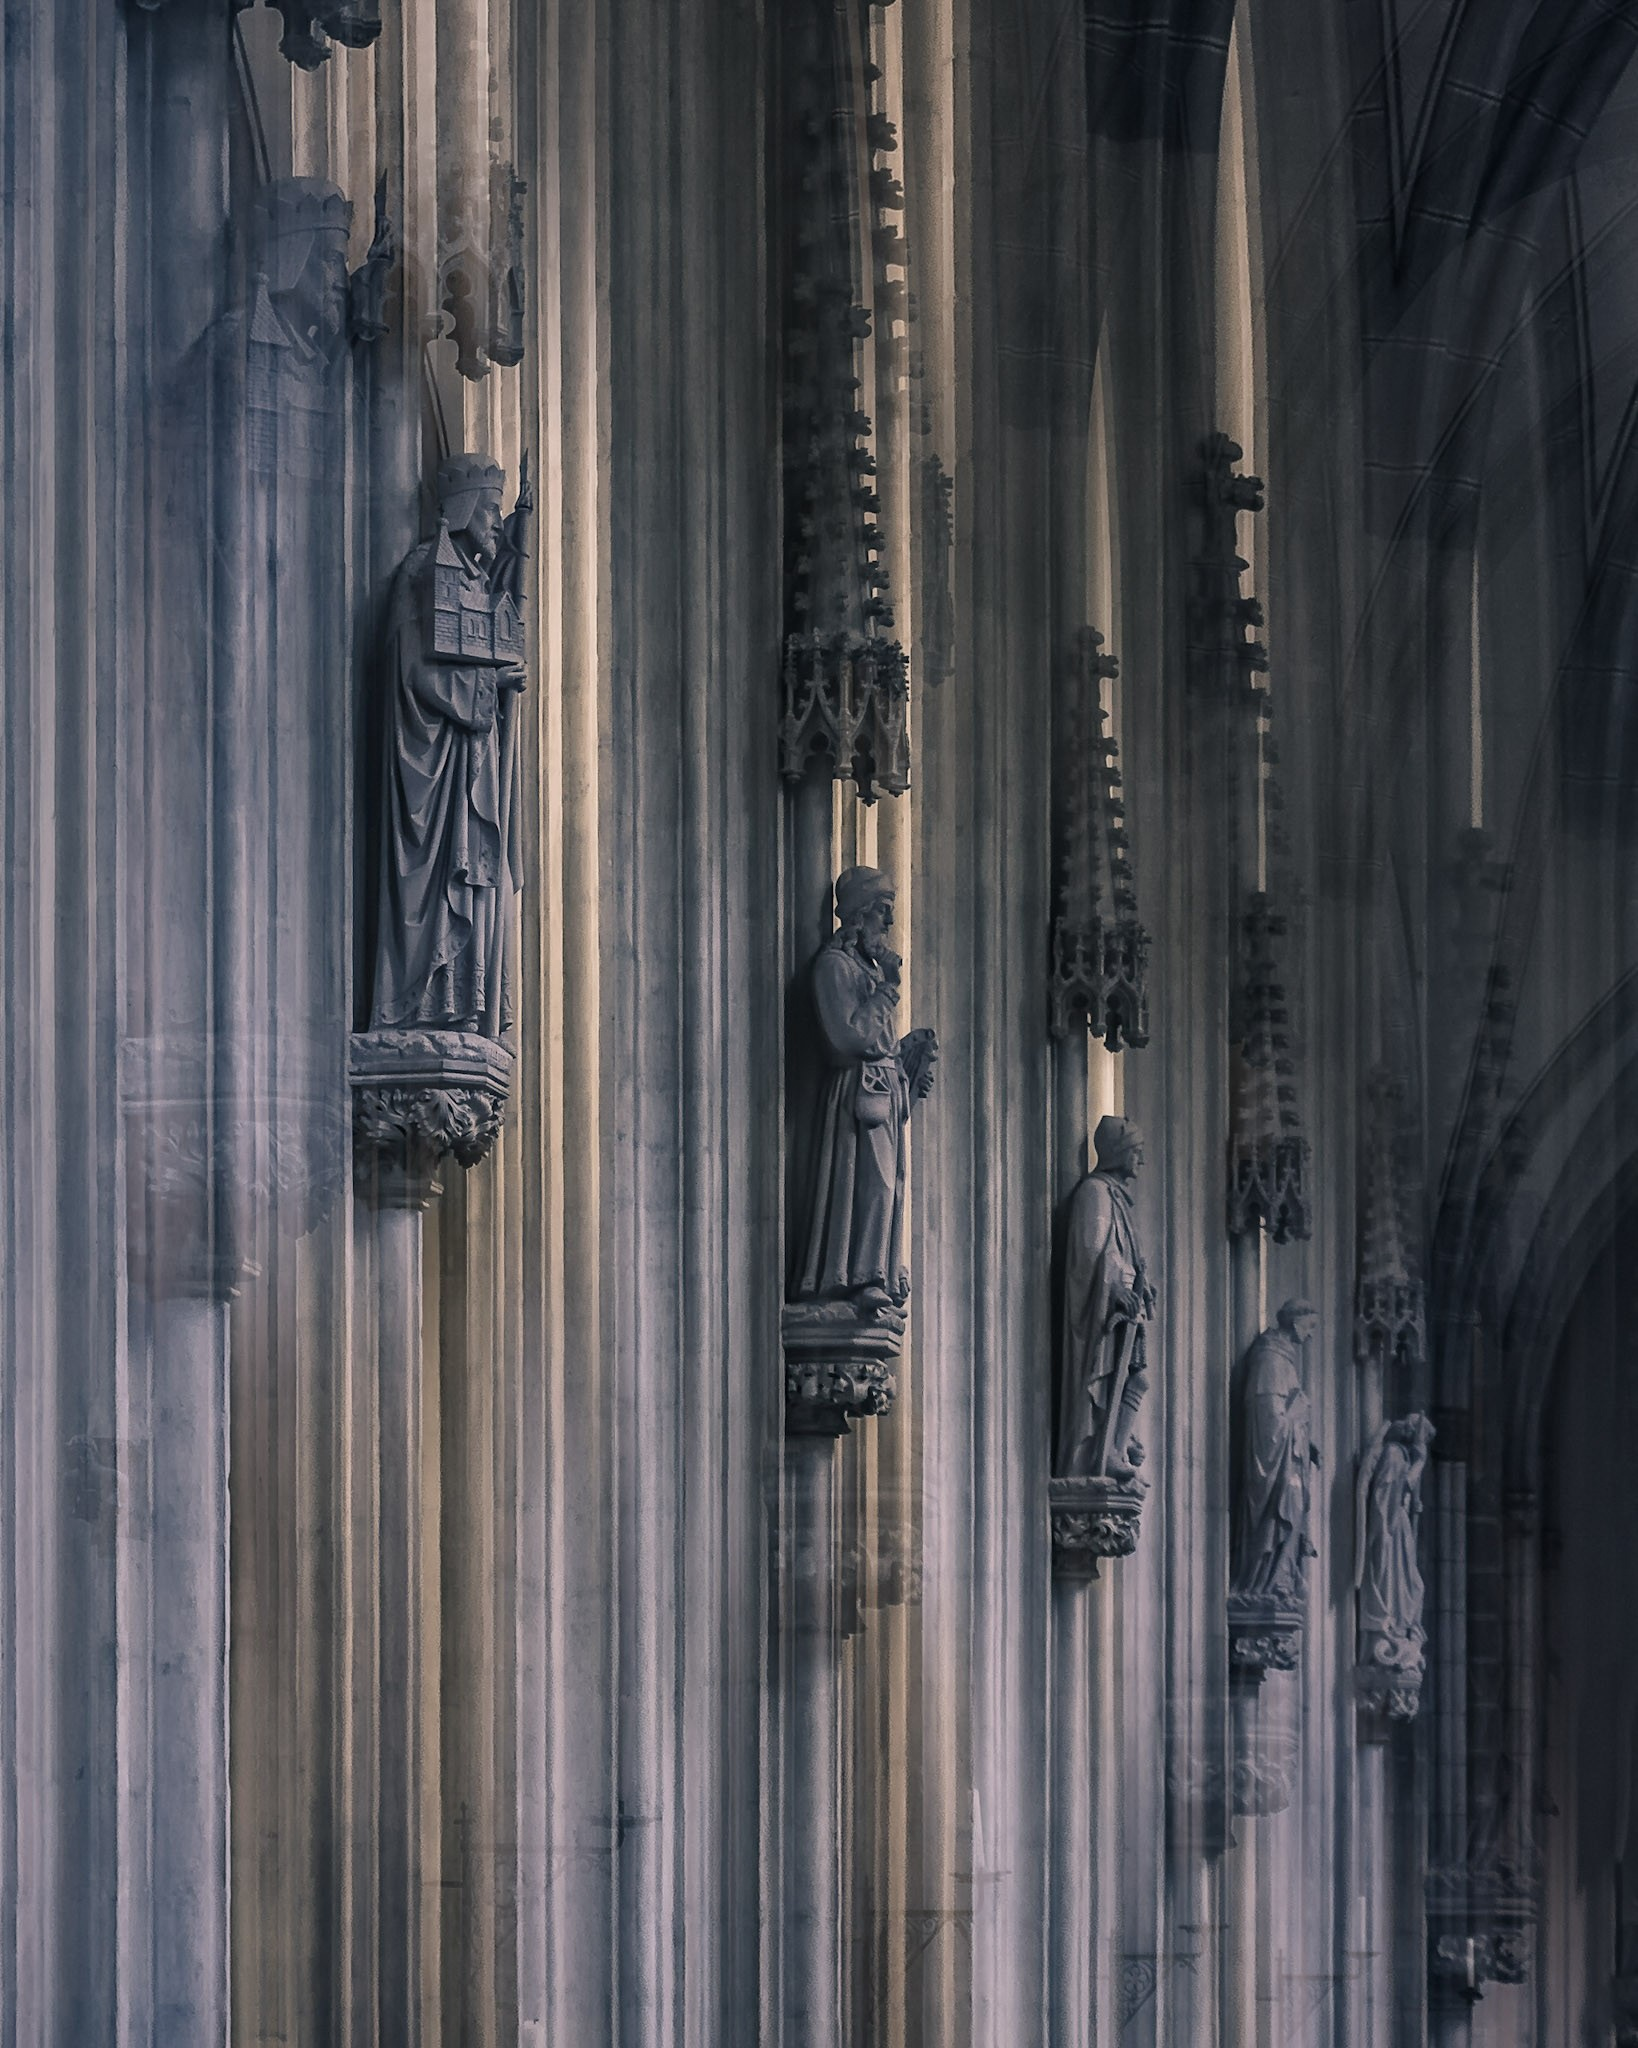 all saints by Rob Menting